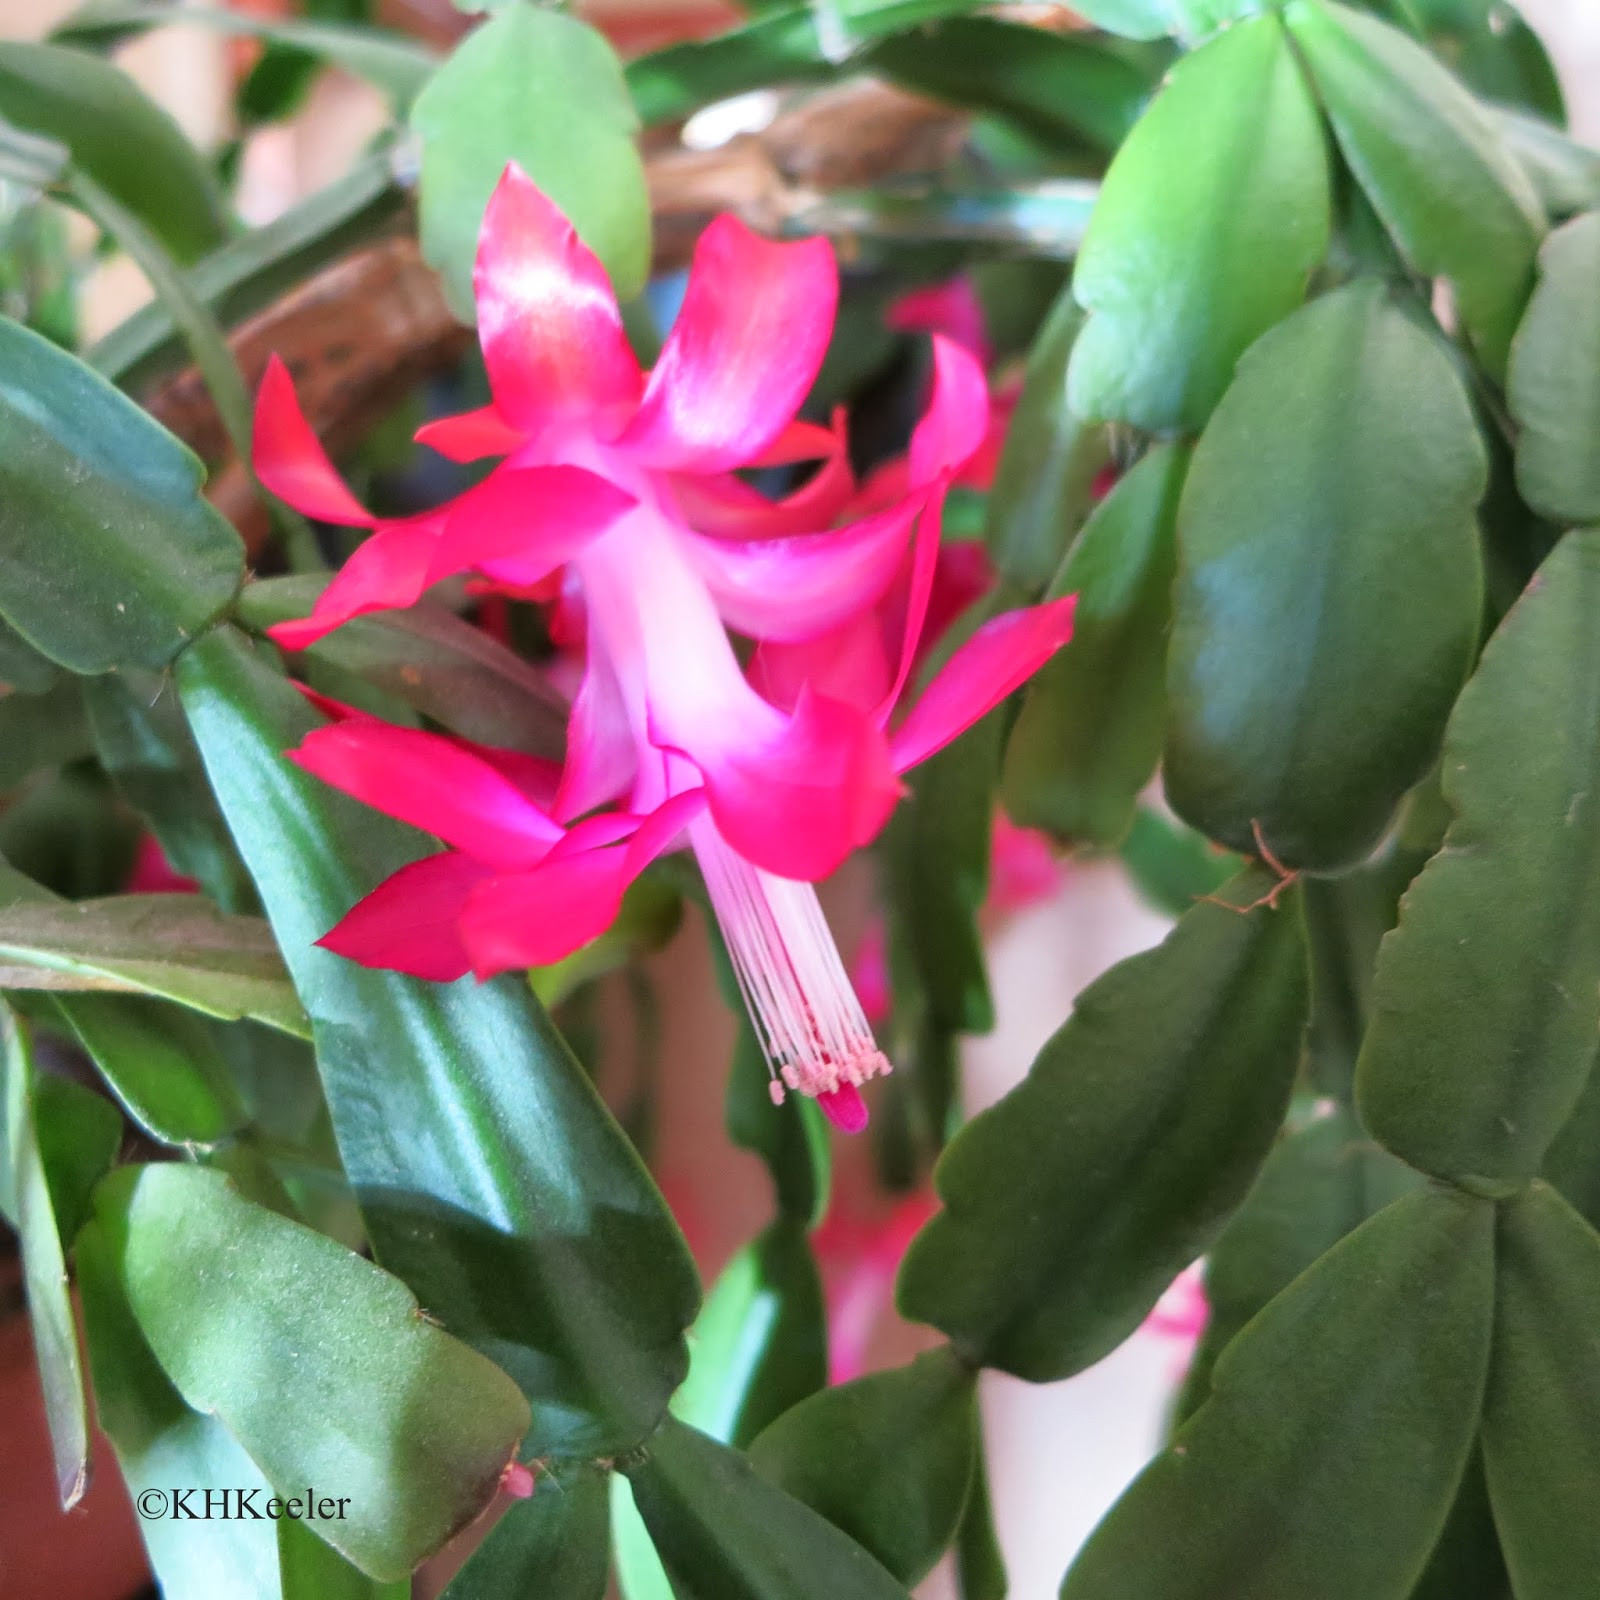 Christmas Catus Flower  A Wandering Botanist Growing a Happy Christmas Cactus